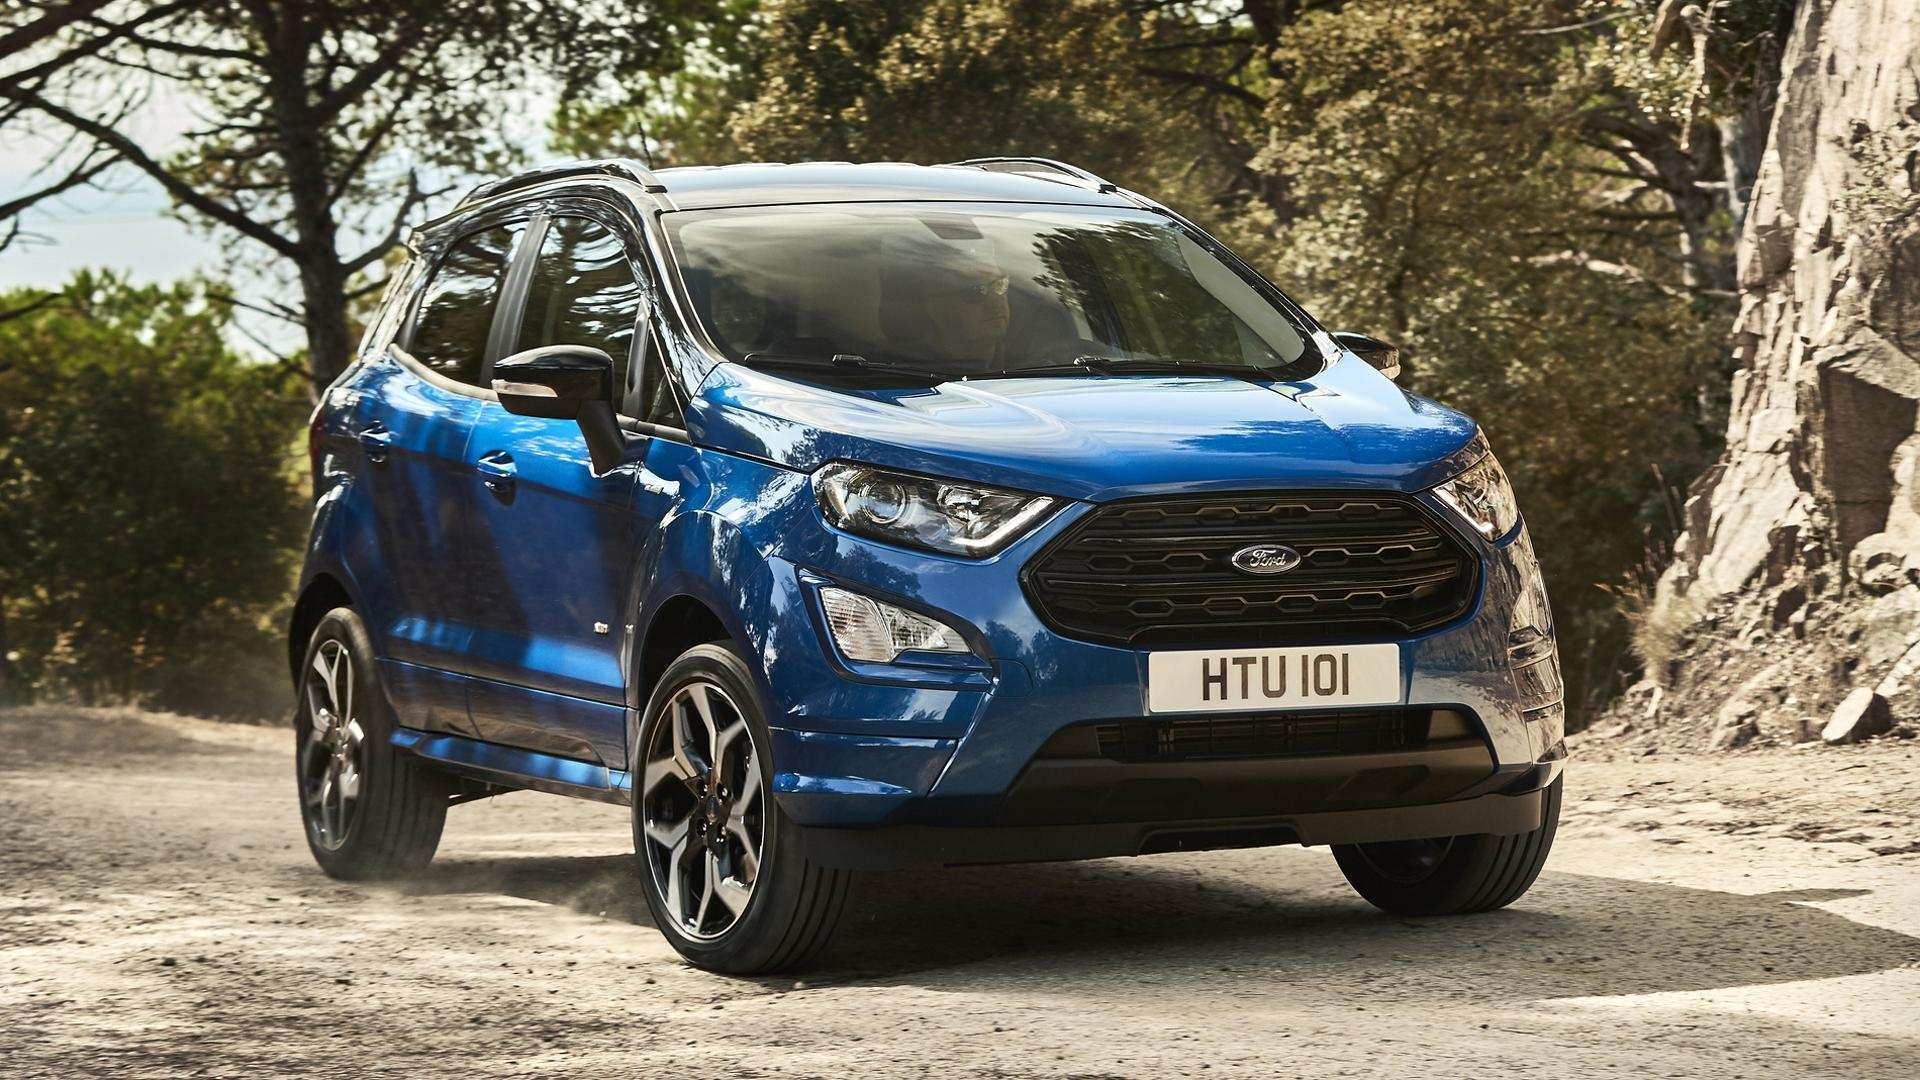 45 Gallery of 2020 Ford Ecosport Pricing with 2020 Ford Ecosport